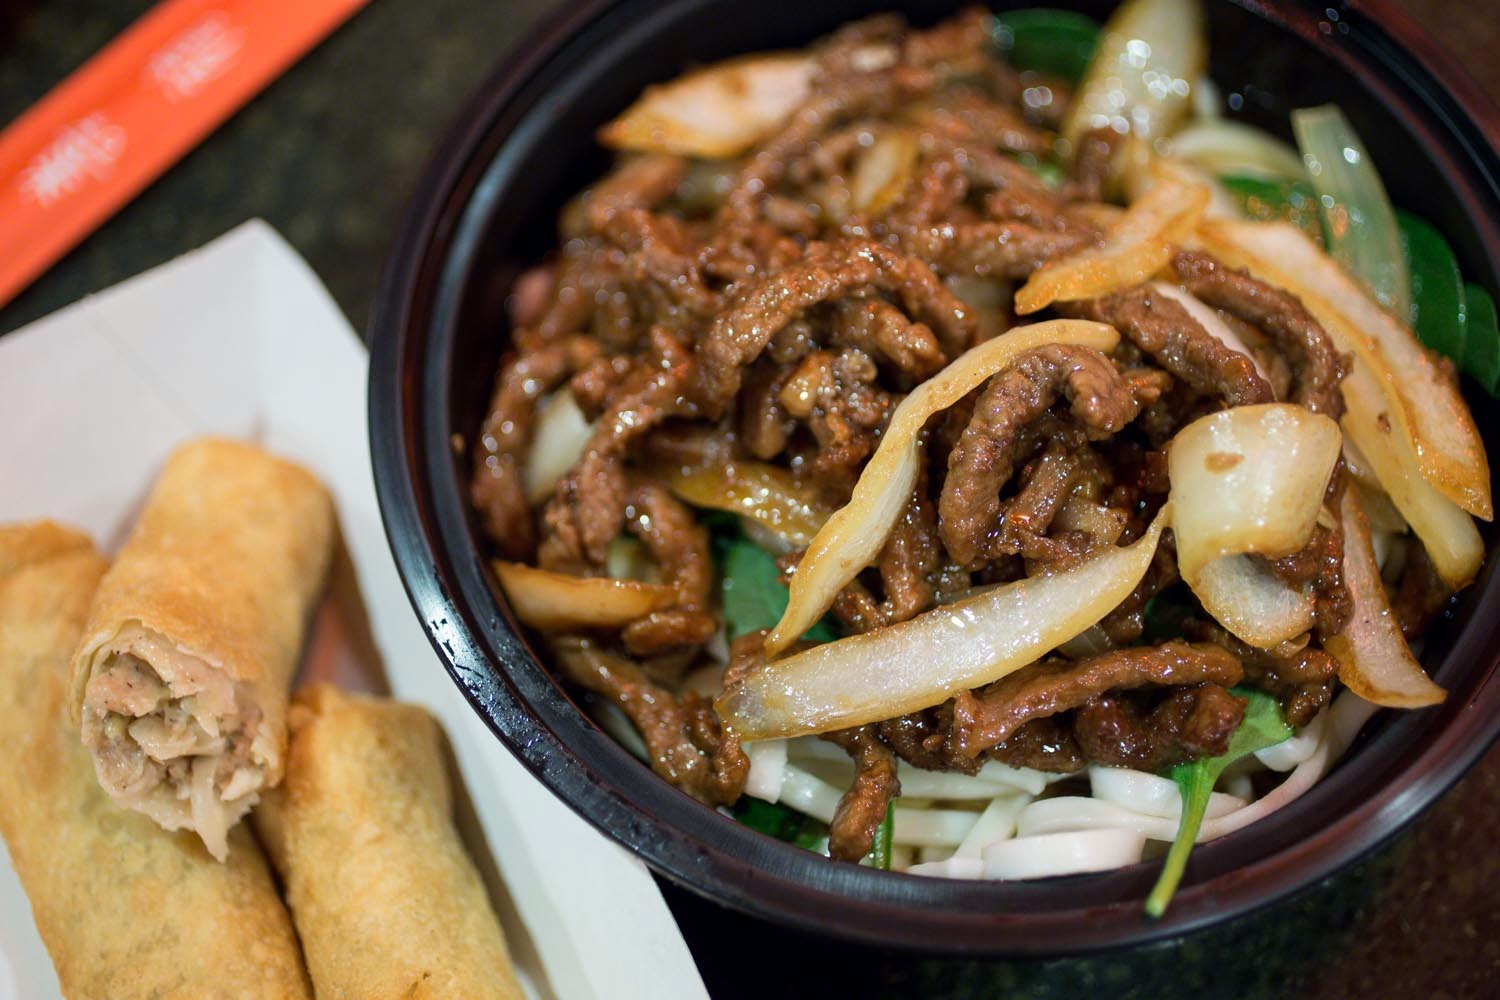 Epcot: Lotus Blossom Cafe- Beef Noodles and Eggrolls